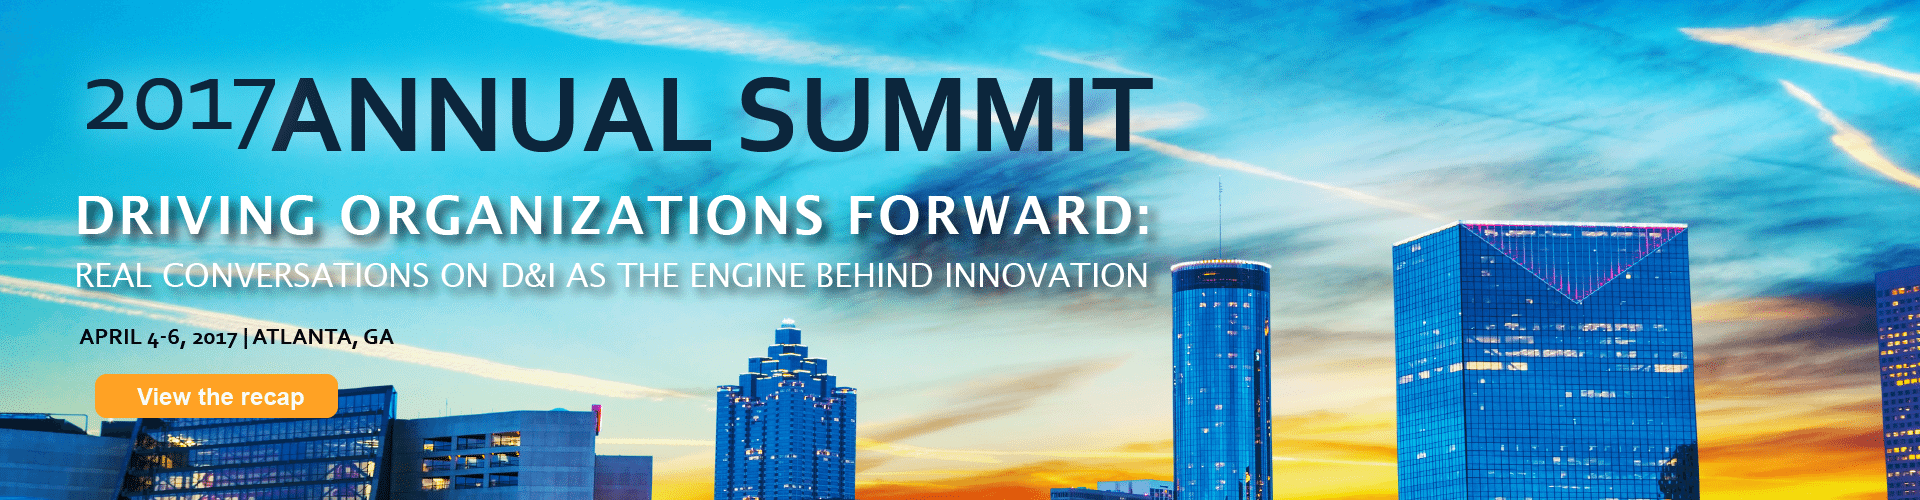 2017 Annual Summit recap banner